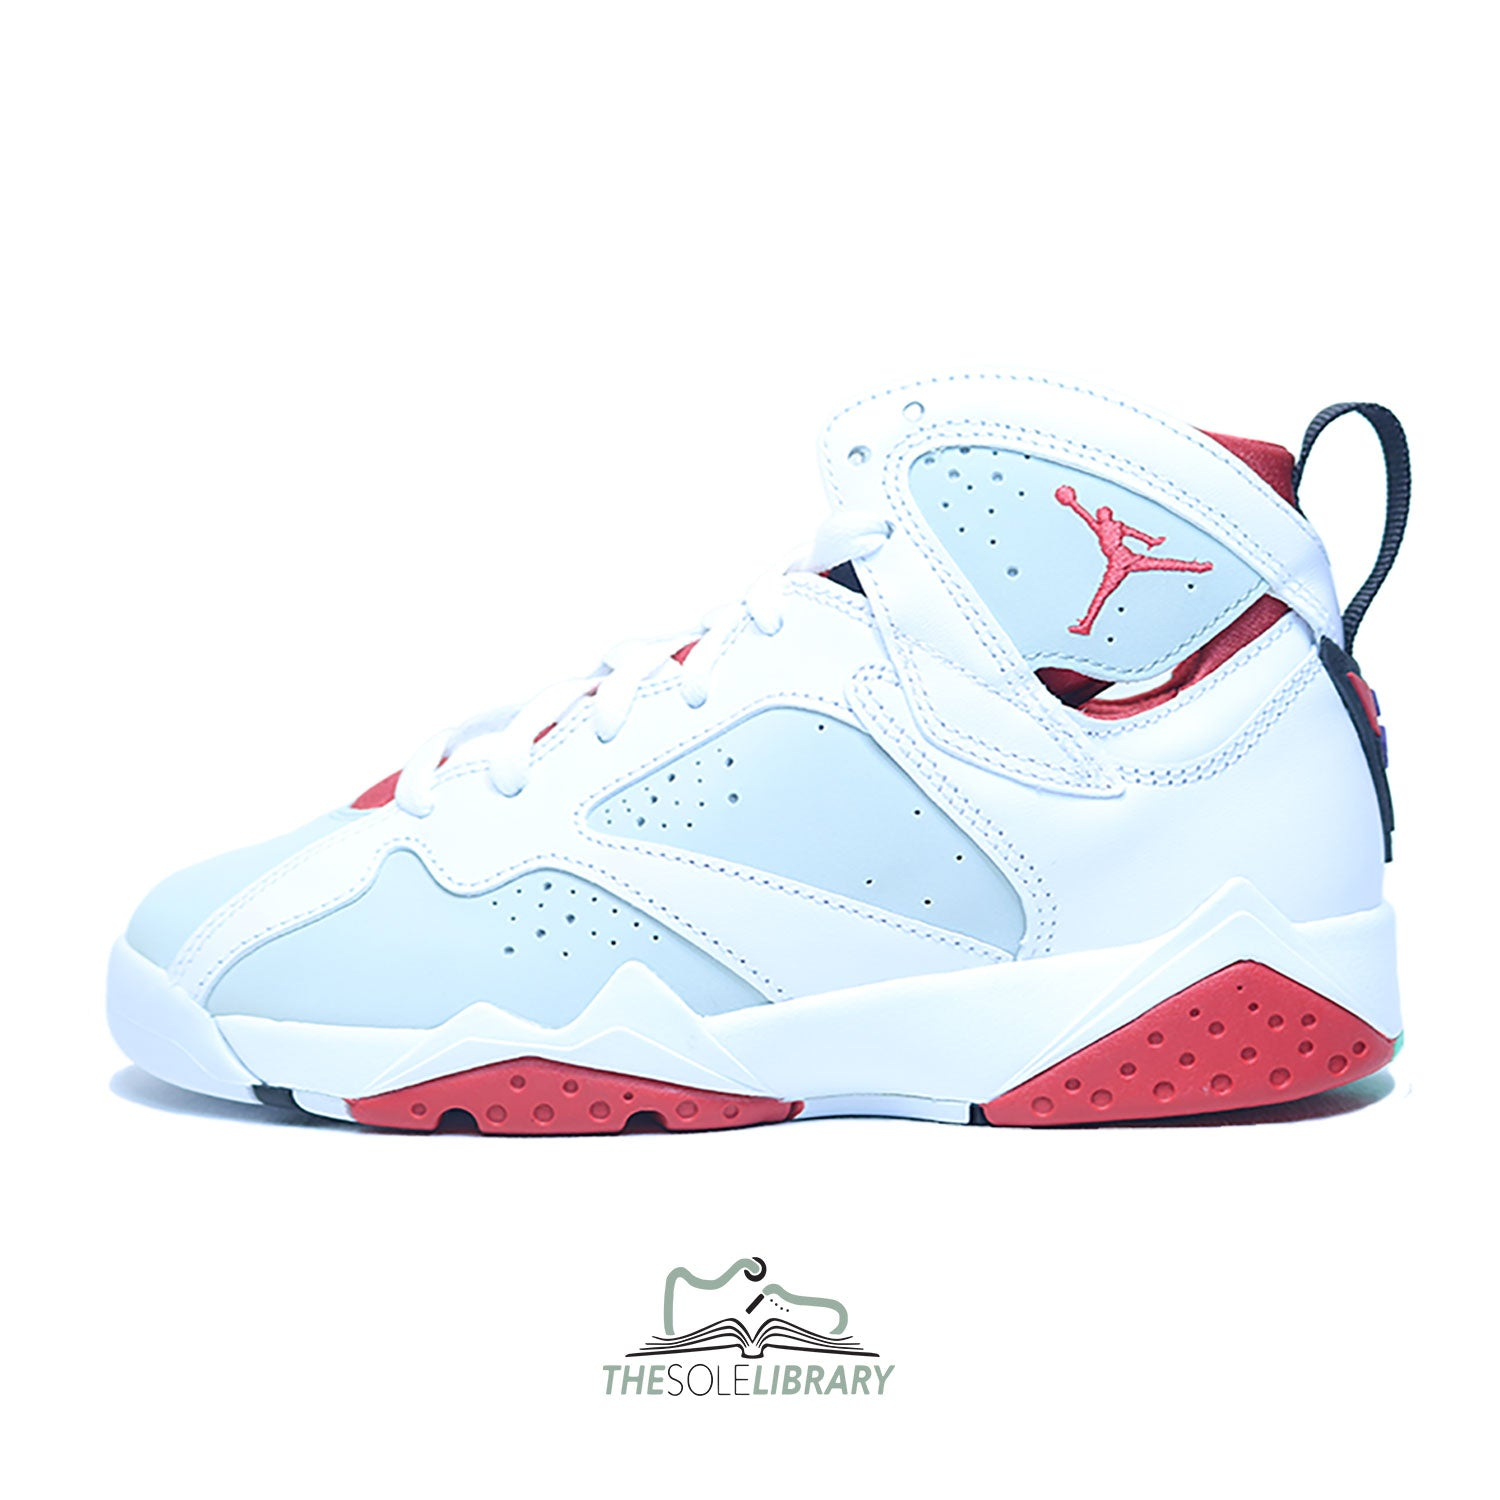 8fed851b83ba8a Jordan 7 Hare For Sale - The Sole Library